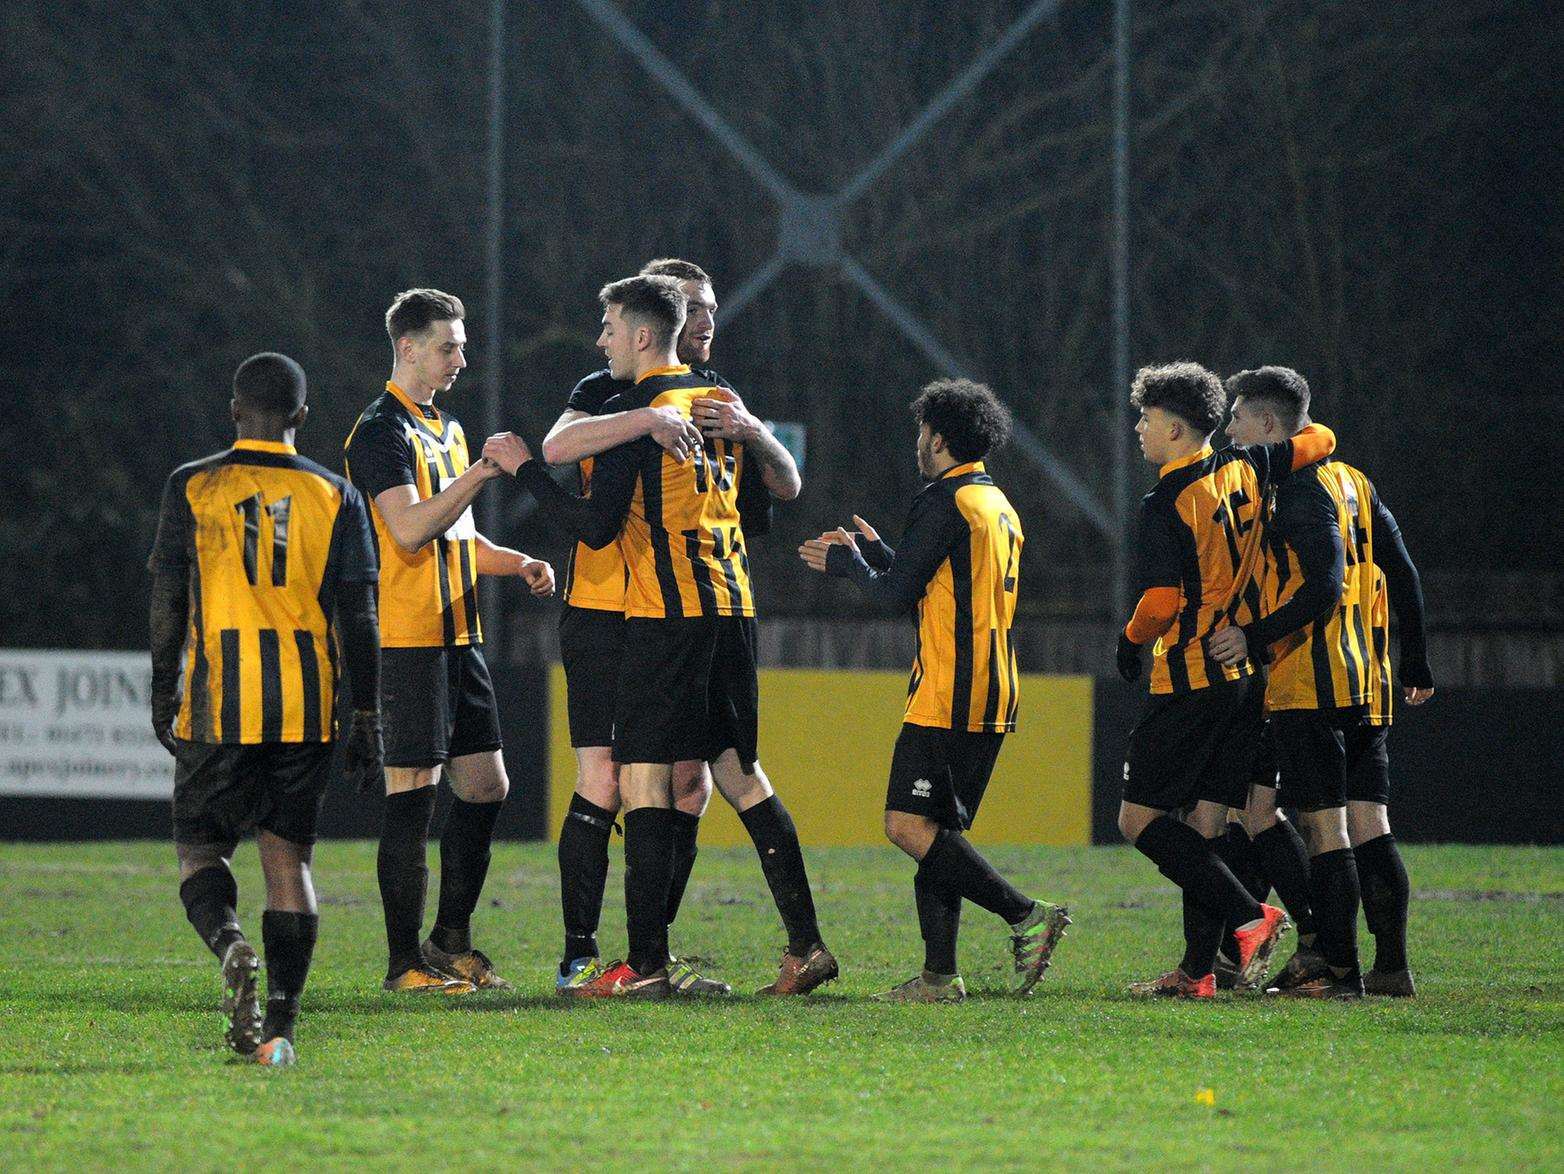 BIG WIN: Stow celebrate their victory over Fakenham. Picture: Mecha Morton